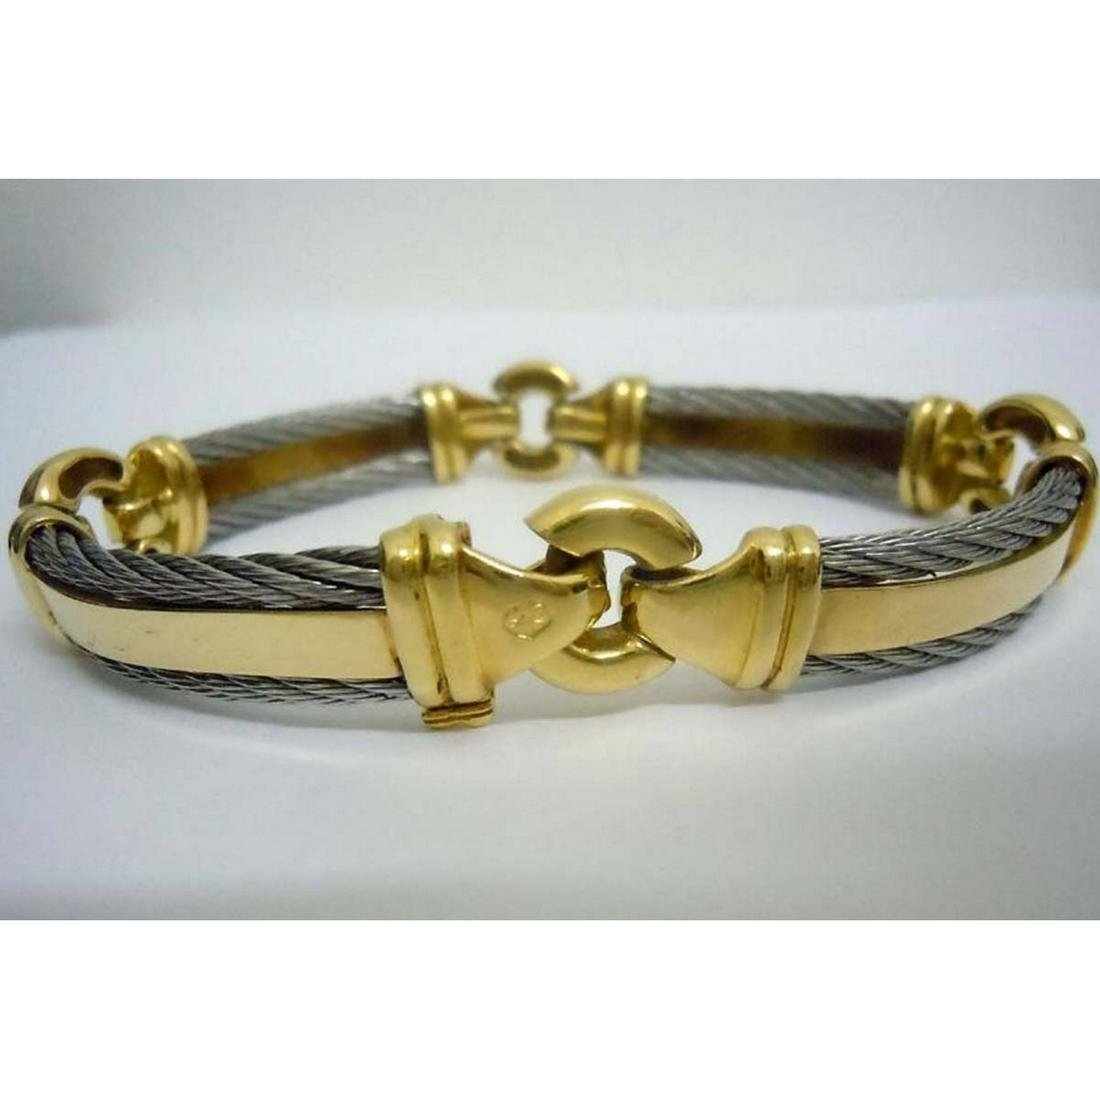 PHILIPPE CHARRIOL 18K GOLD STAINLESS CABLE BRACELET